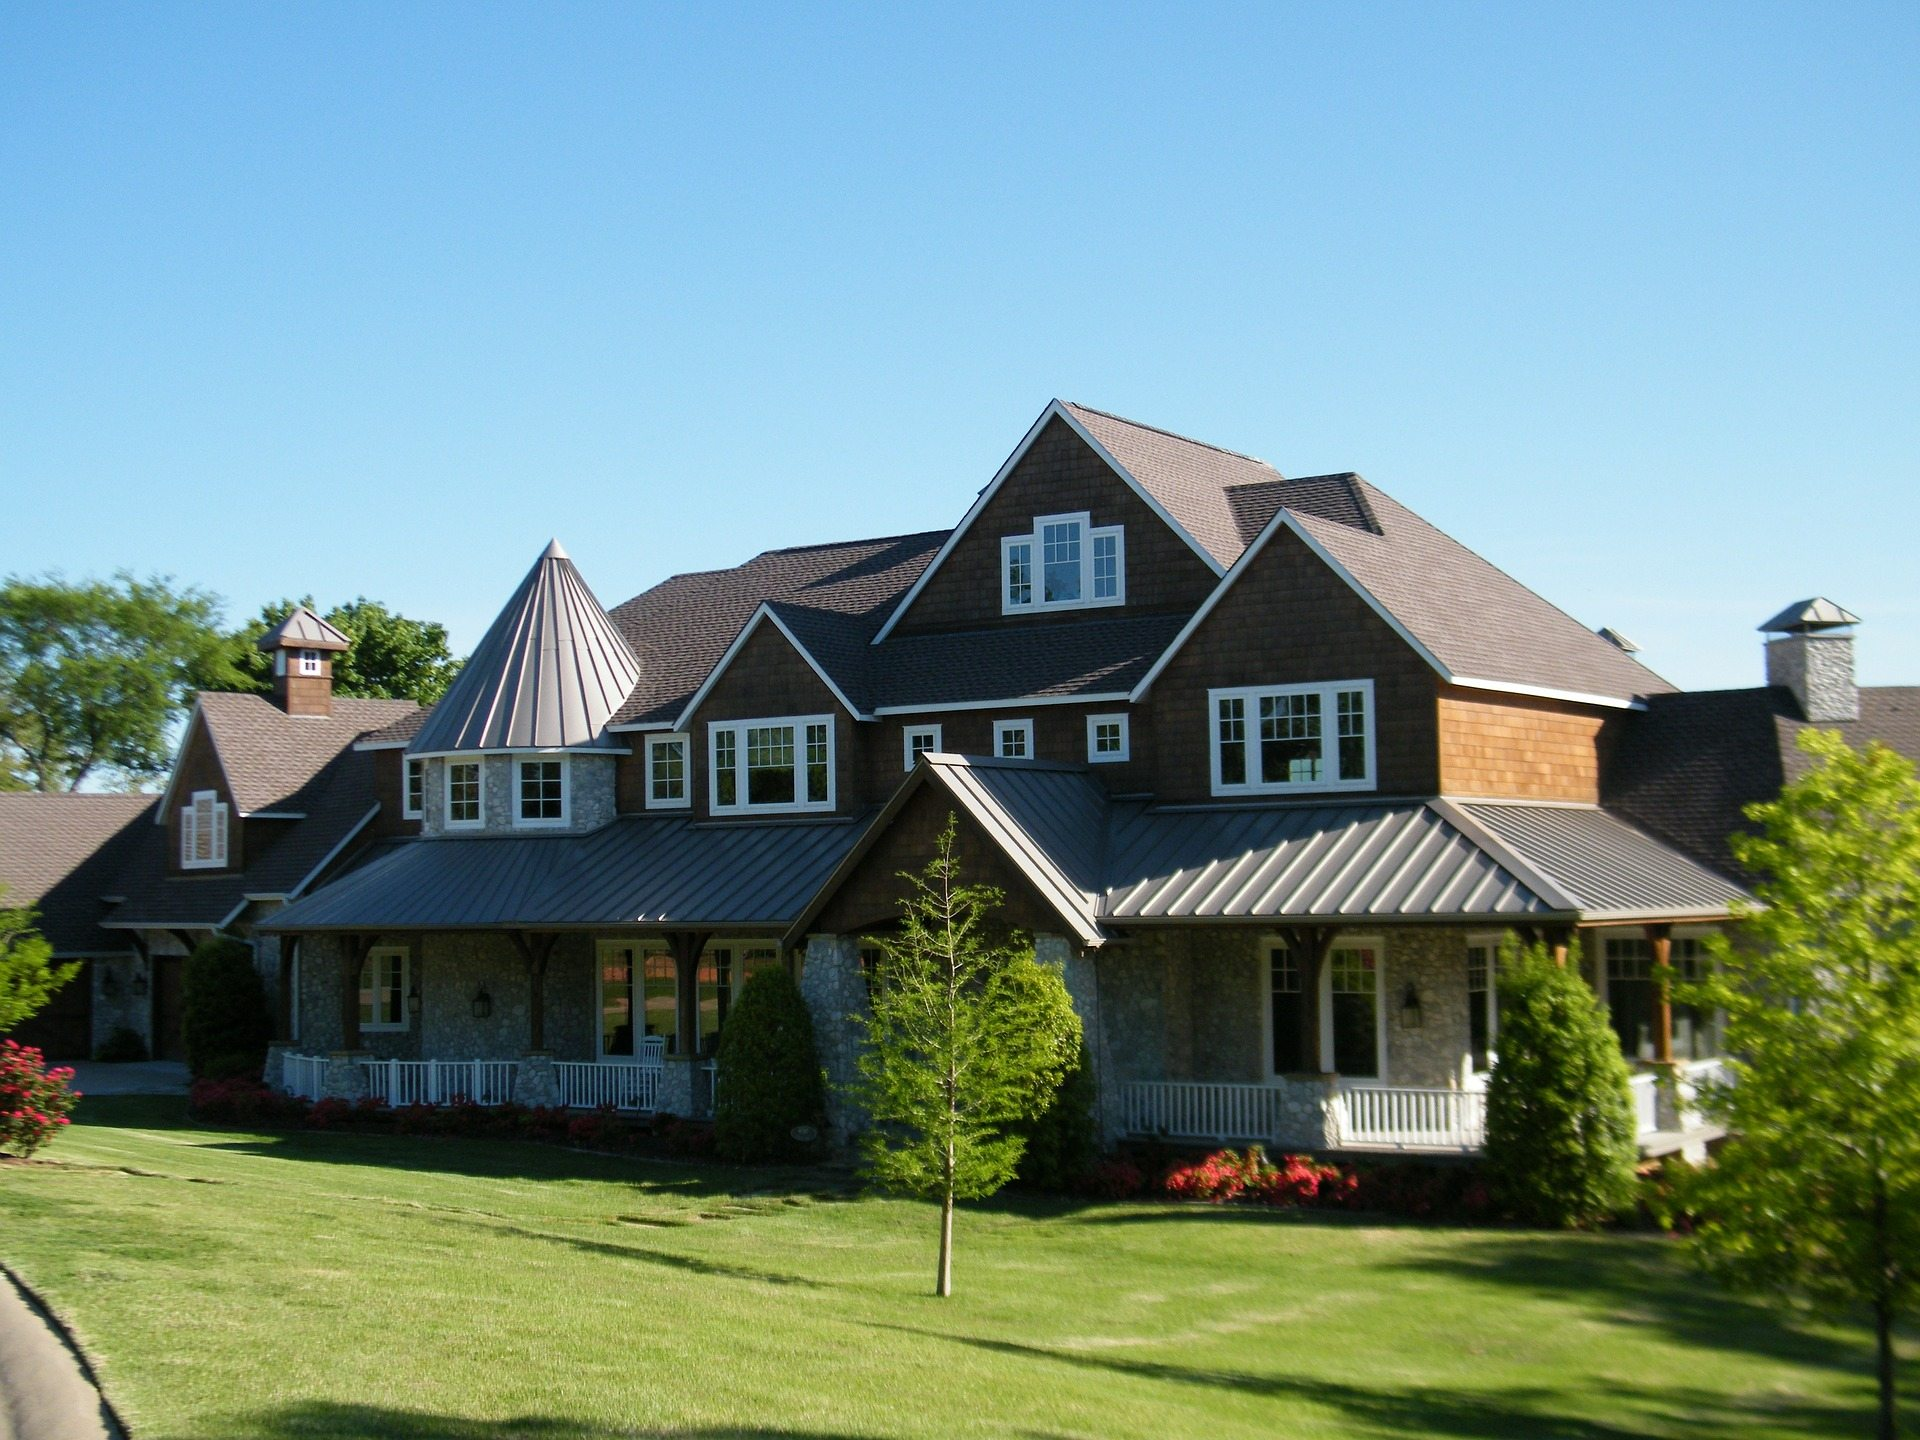 tax breaks for owning a second home in aspen - buy a home aspen co